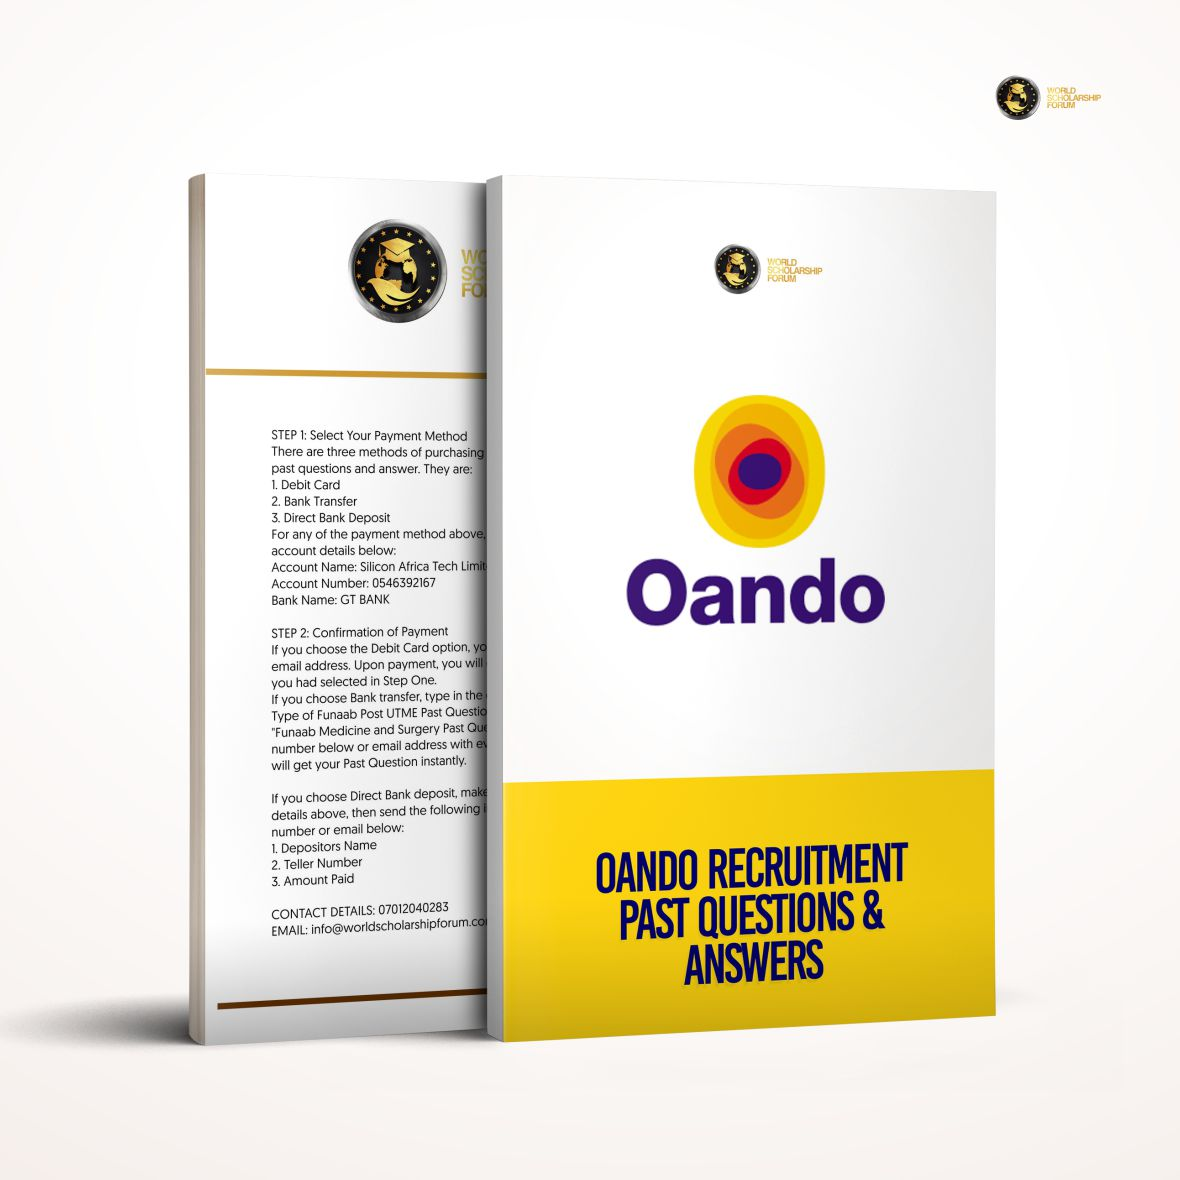 oando-recruitment-test-pat-questions-answers